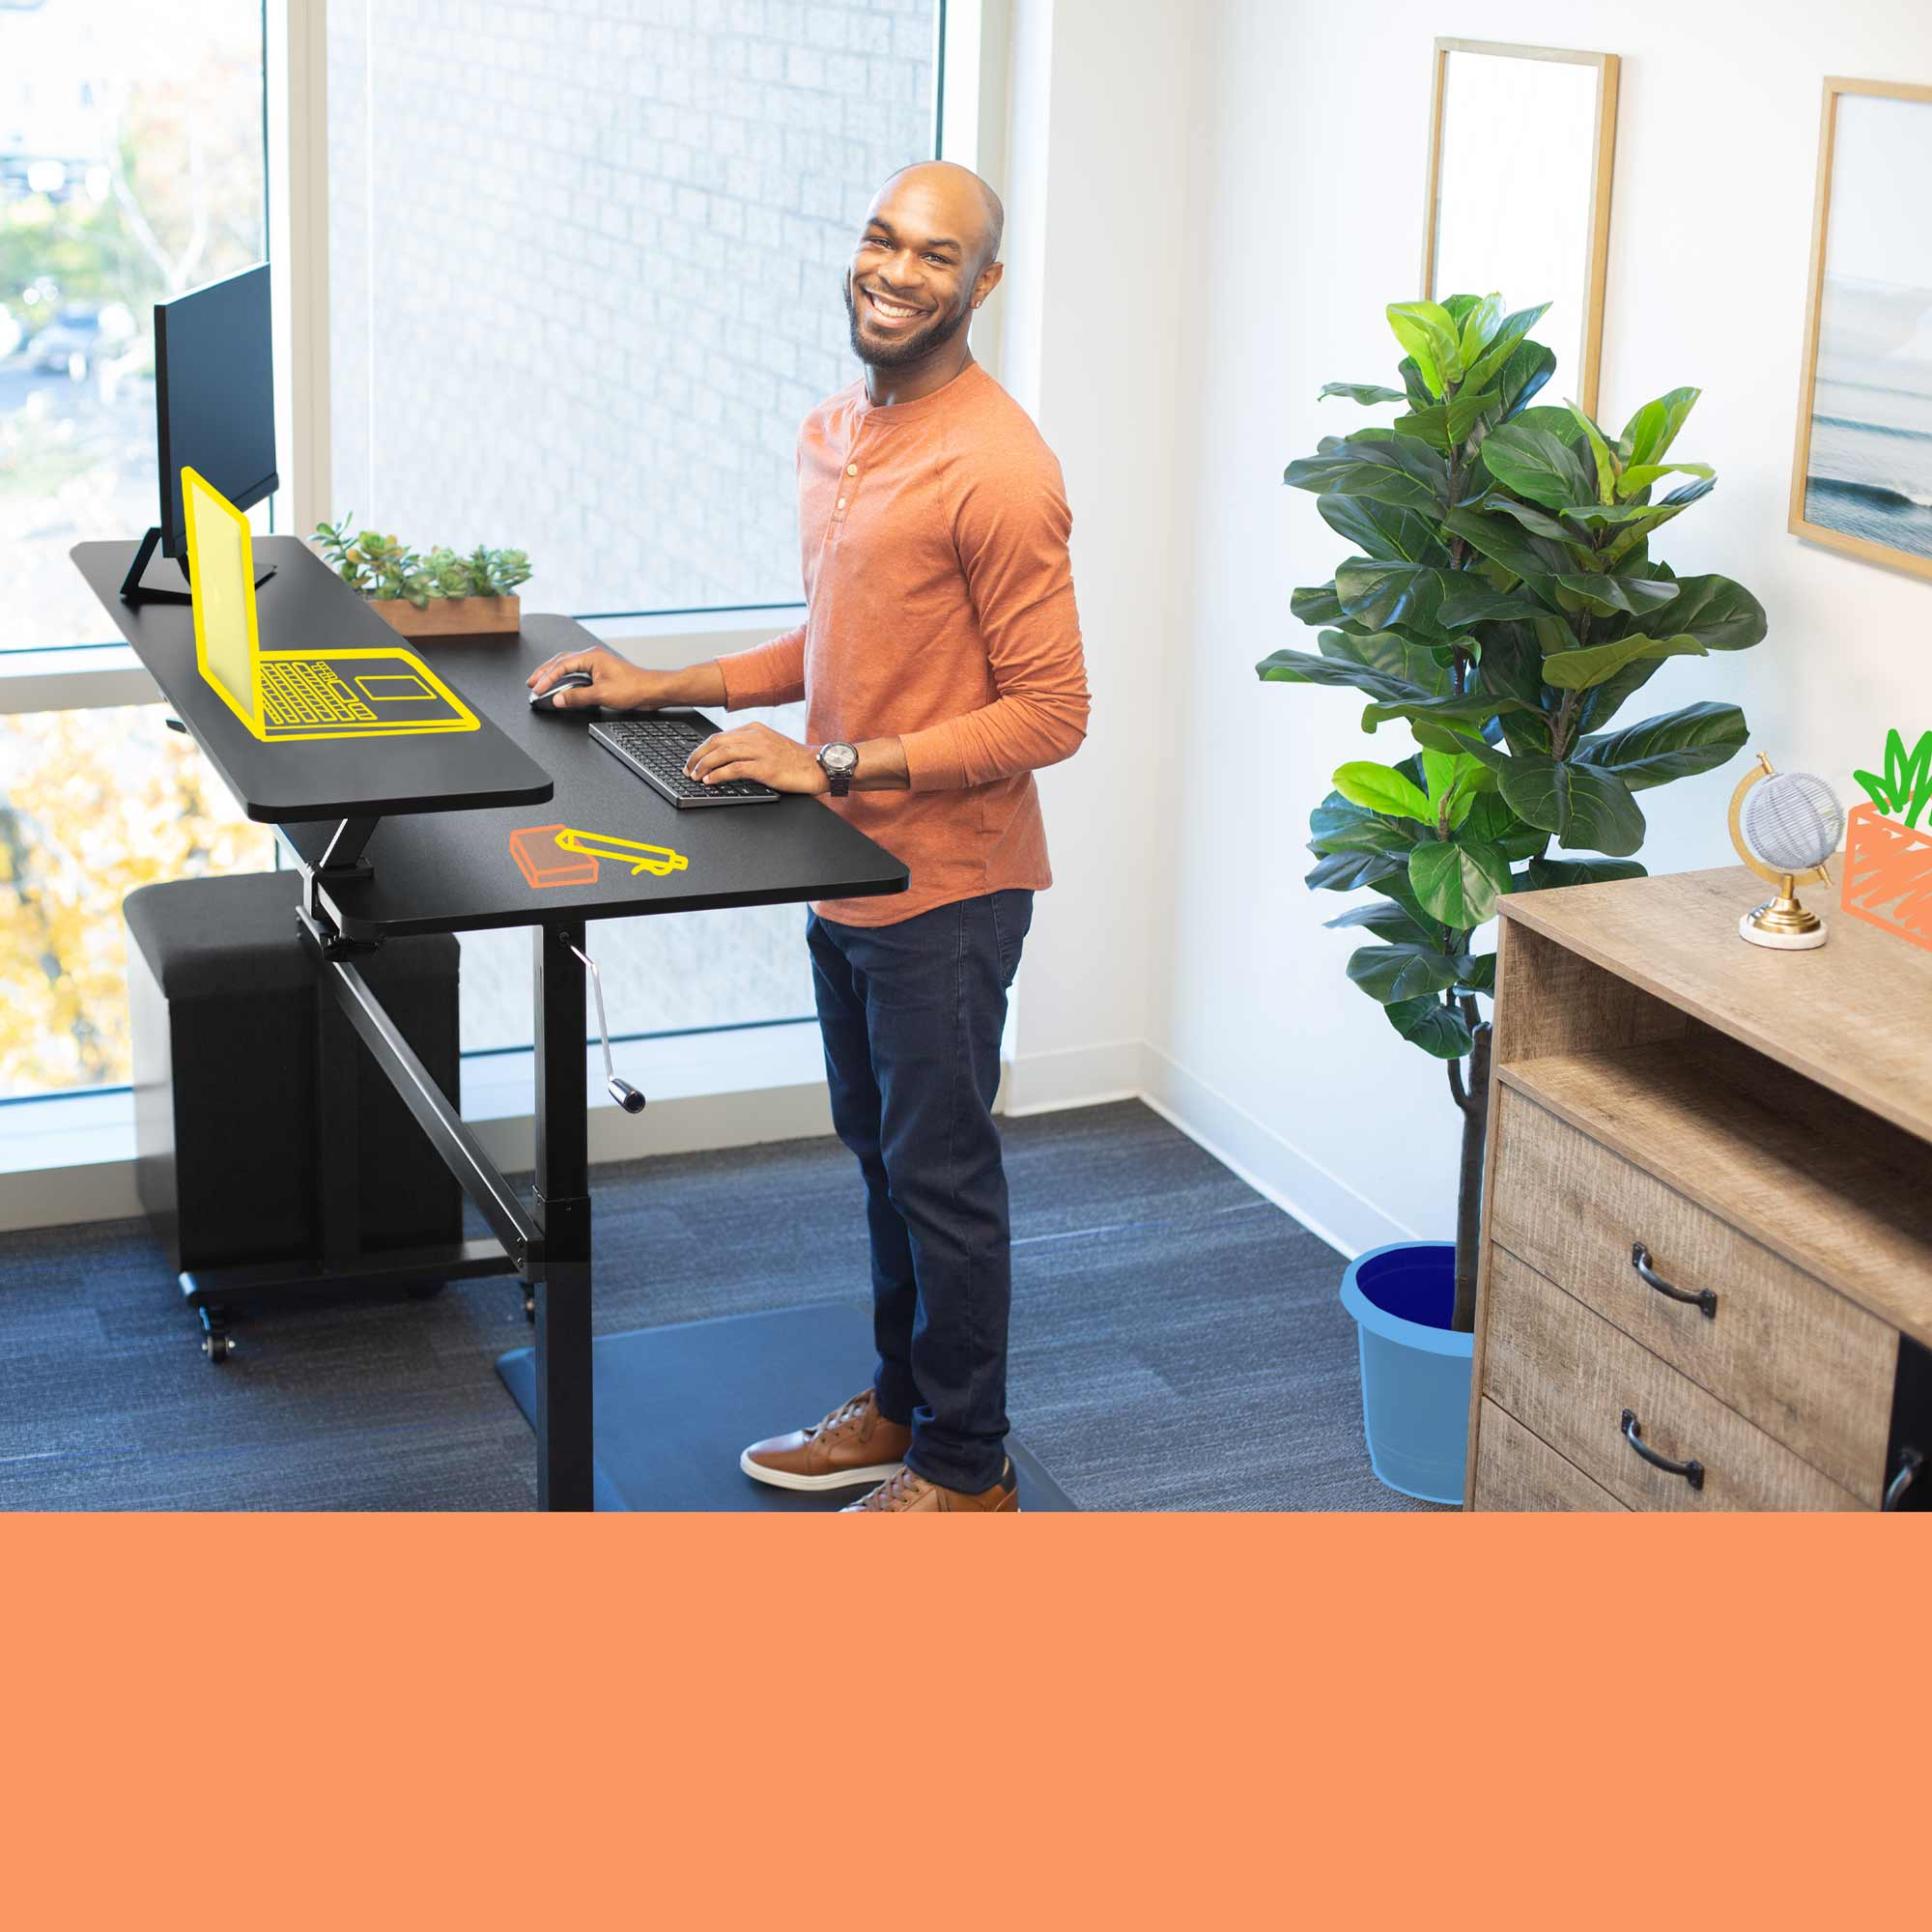 A Happier, More Ergonomic Workday